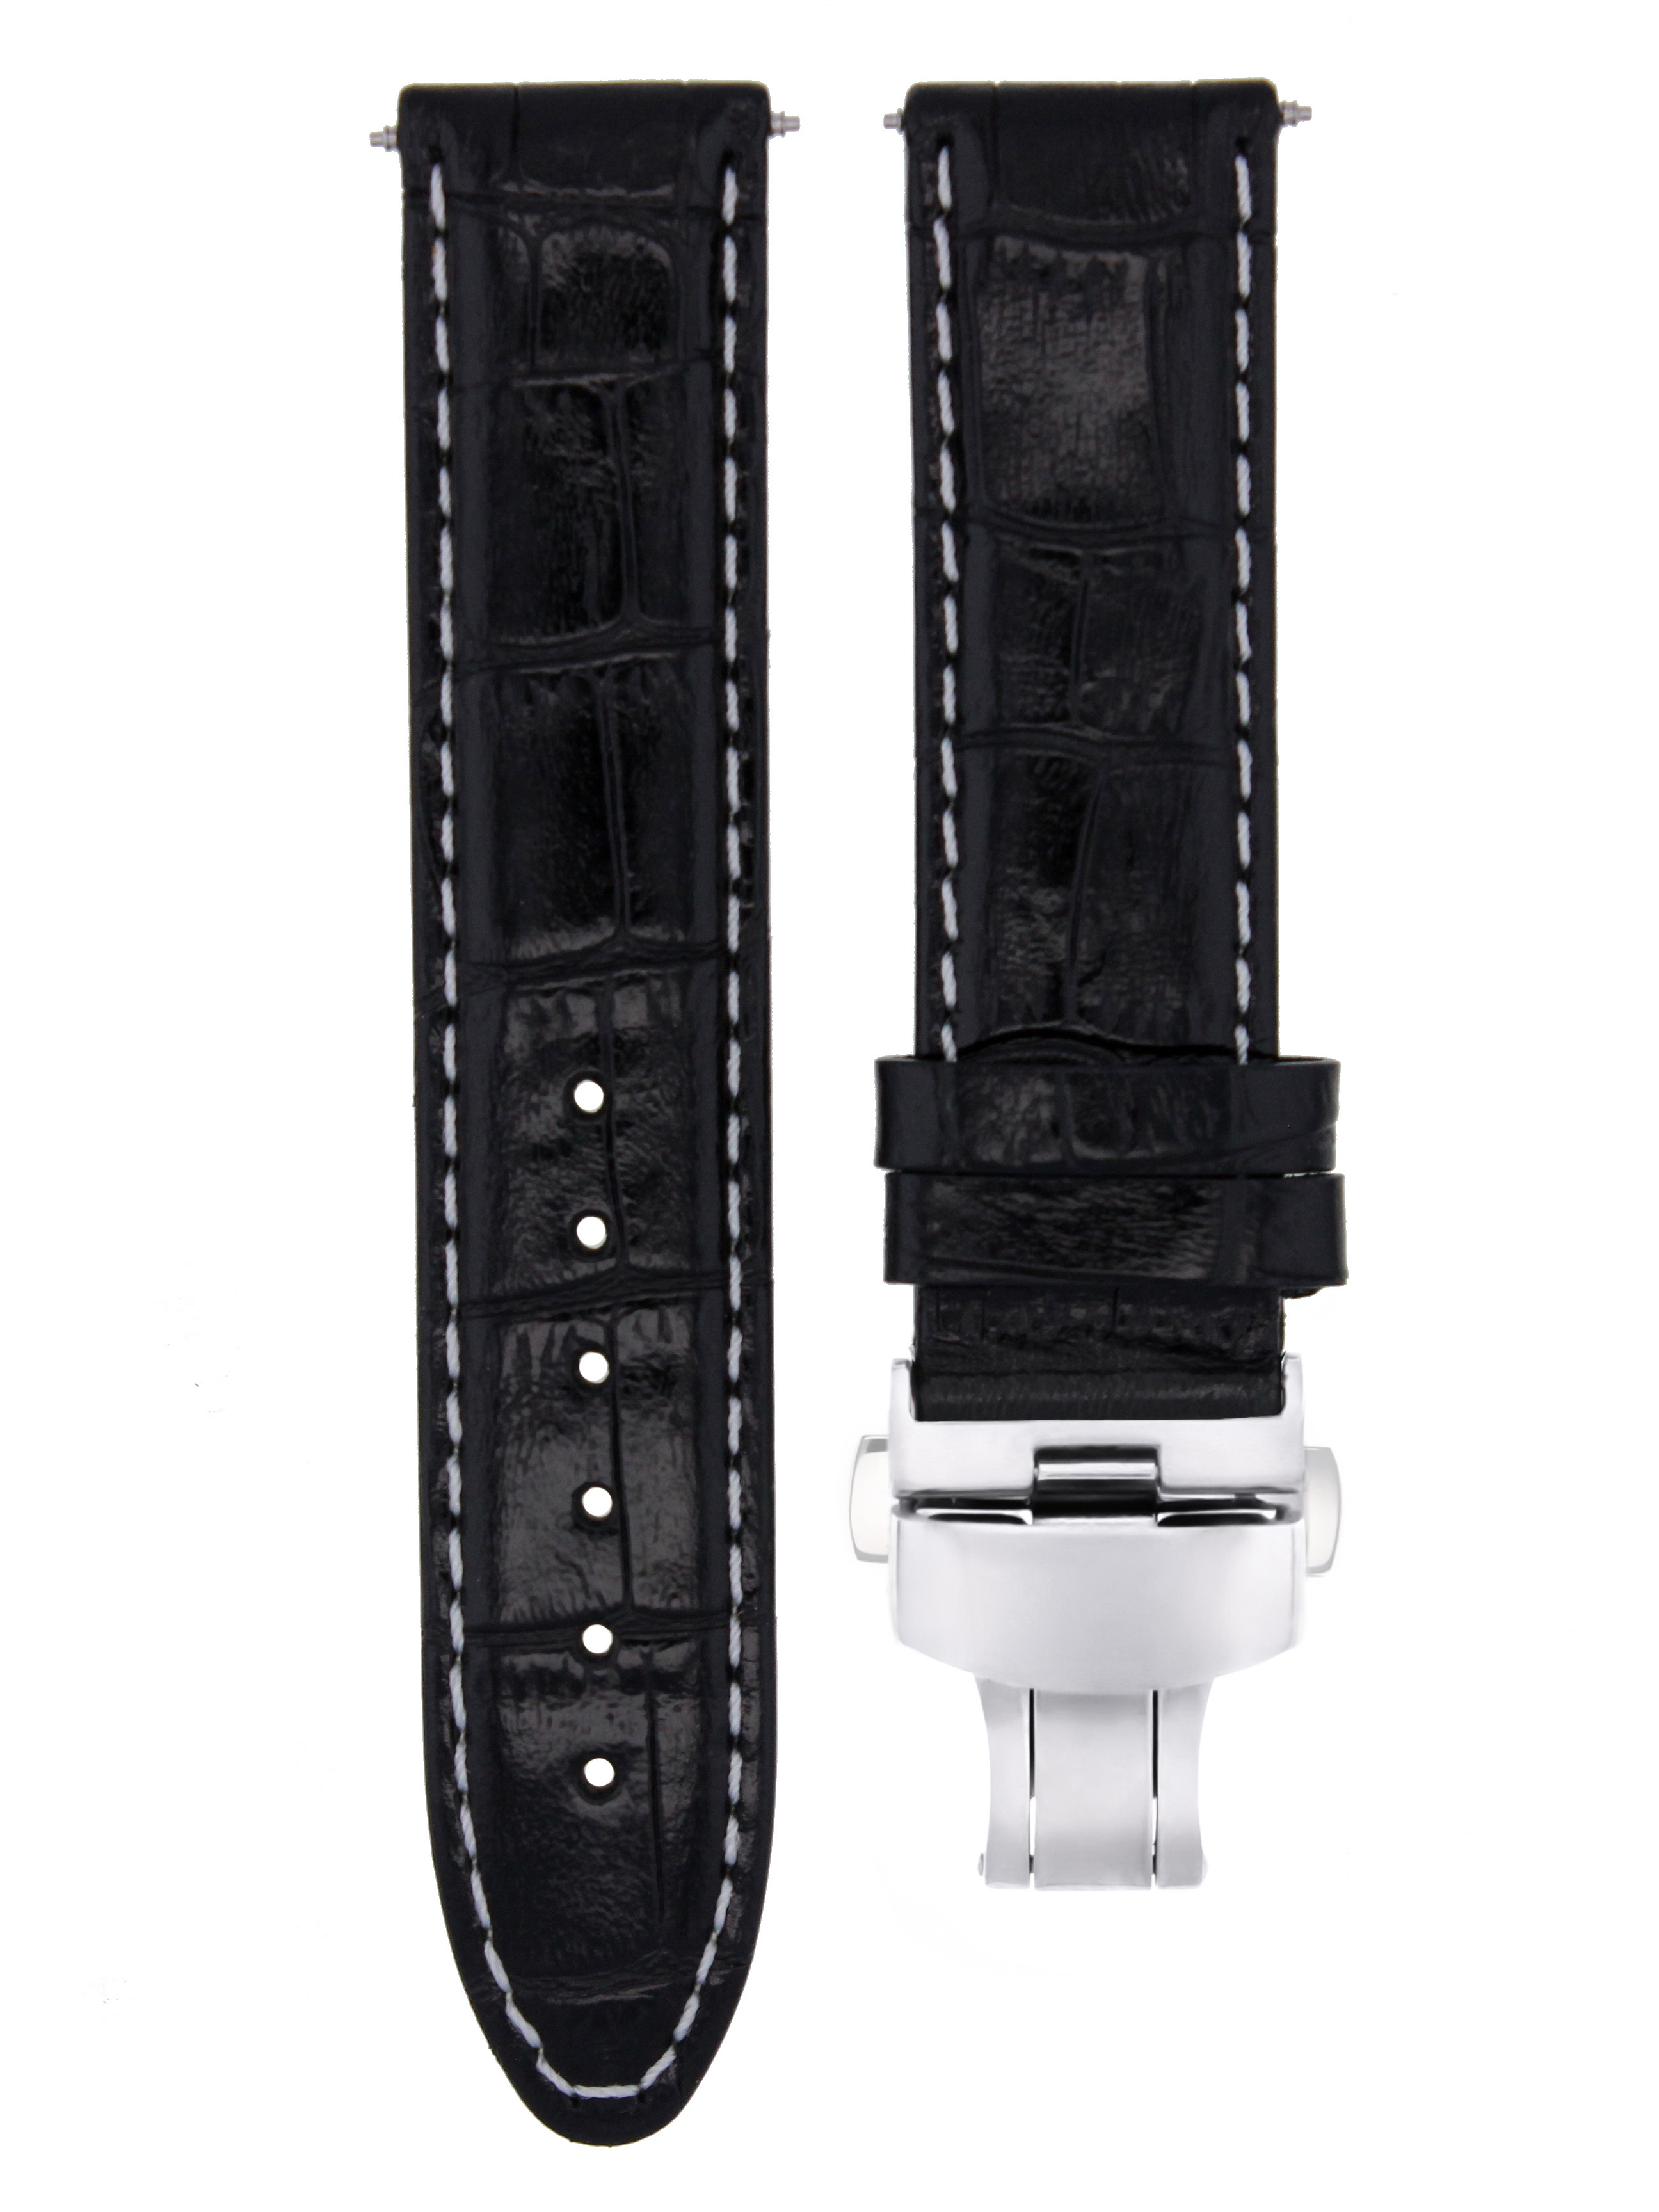 34e040282c5 Details about 22MM LEATHER WATCH STRAP BAND FOR BREITLING NAVITIMER  CHRONOMAT COLT BLACK WS 7